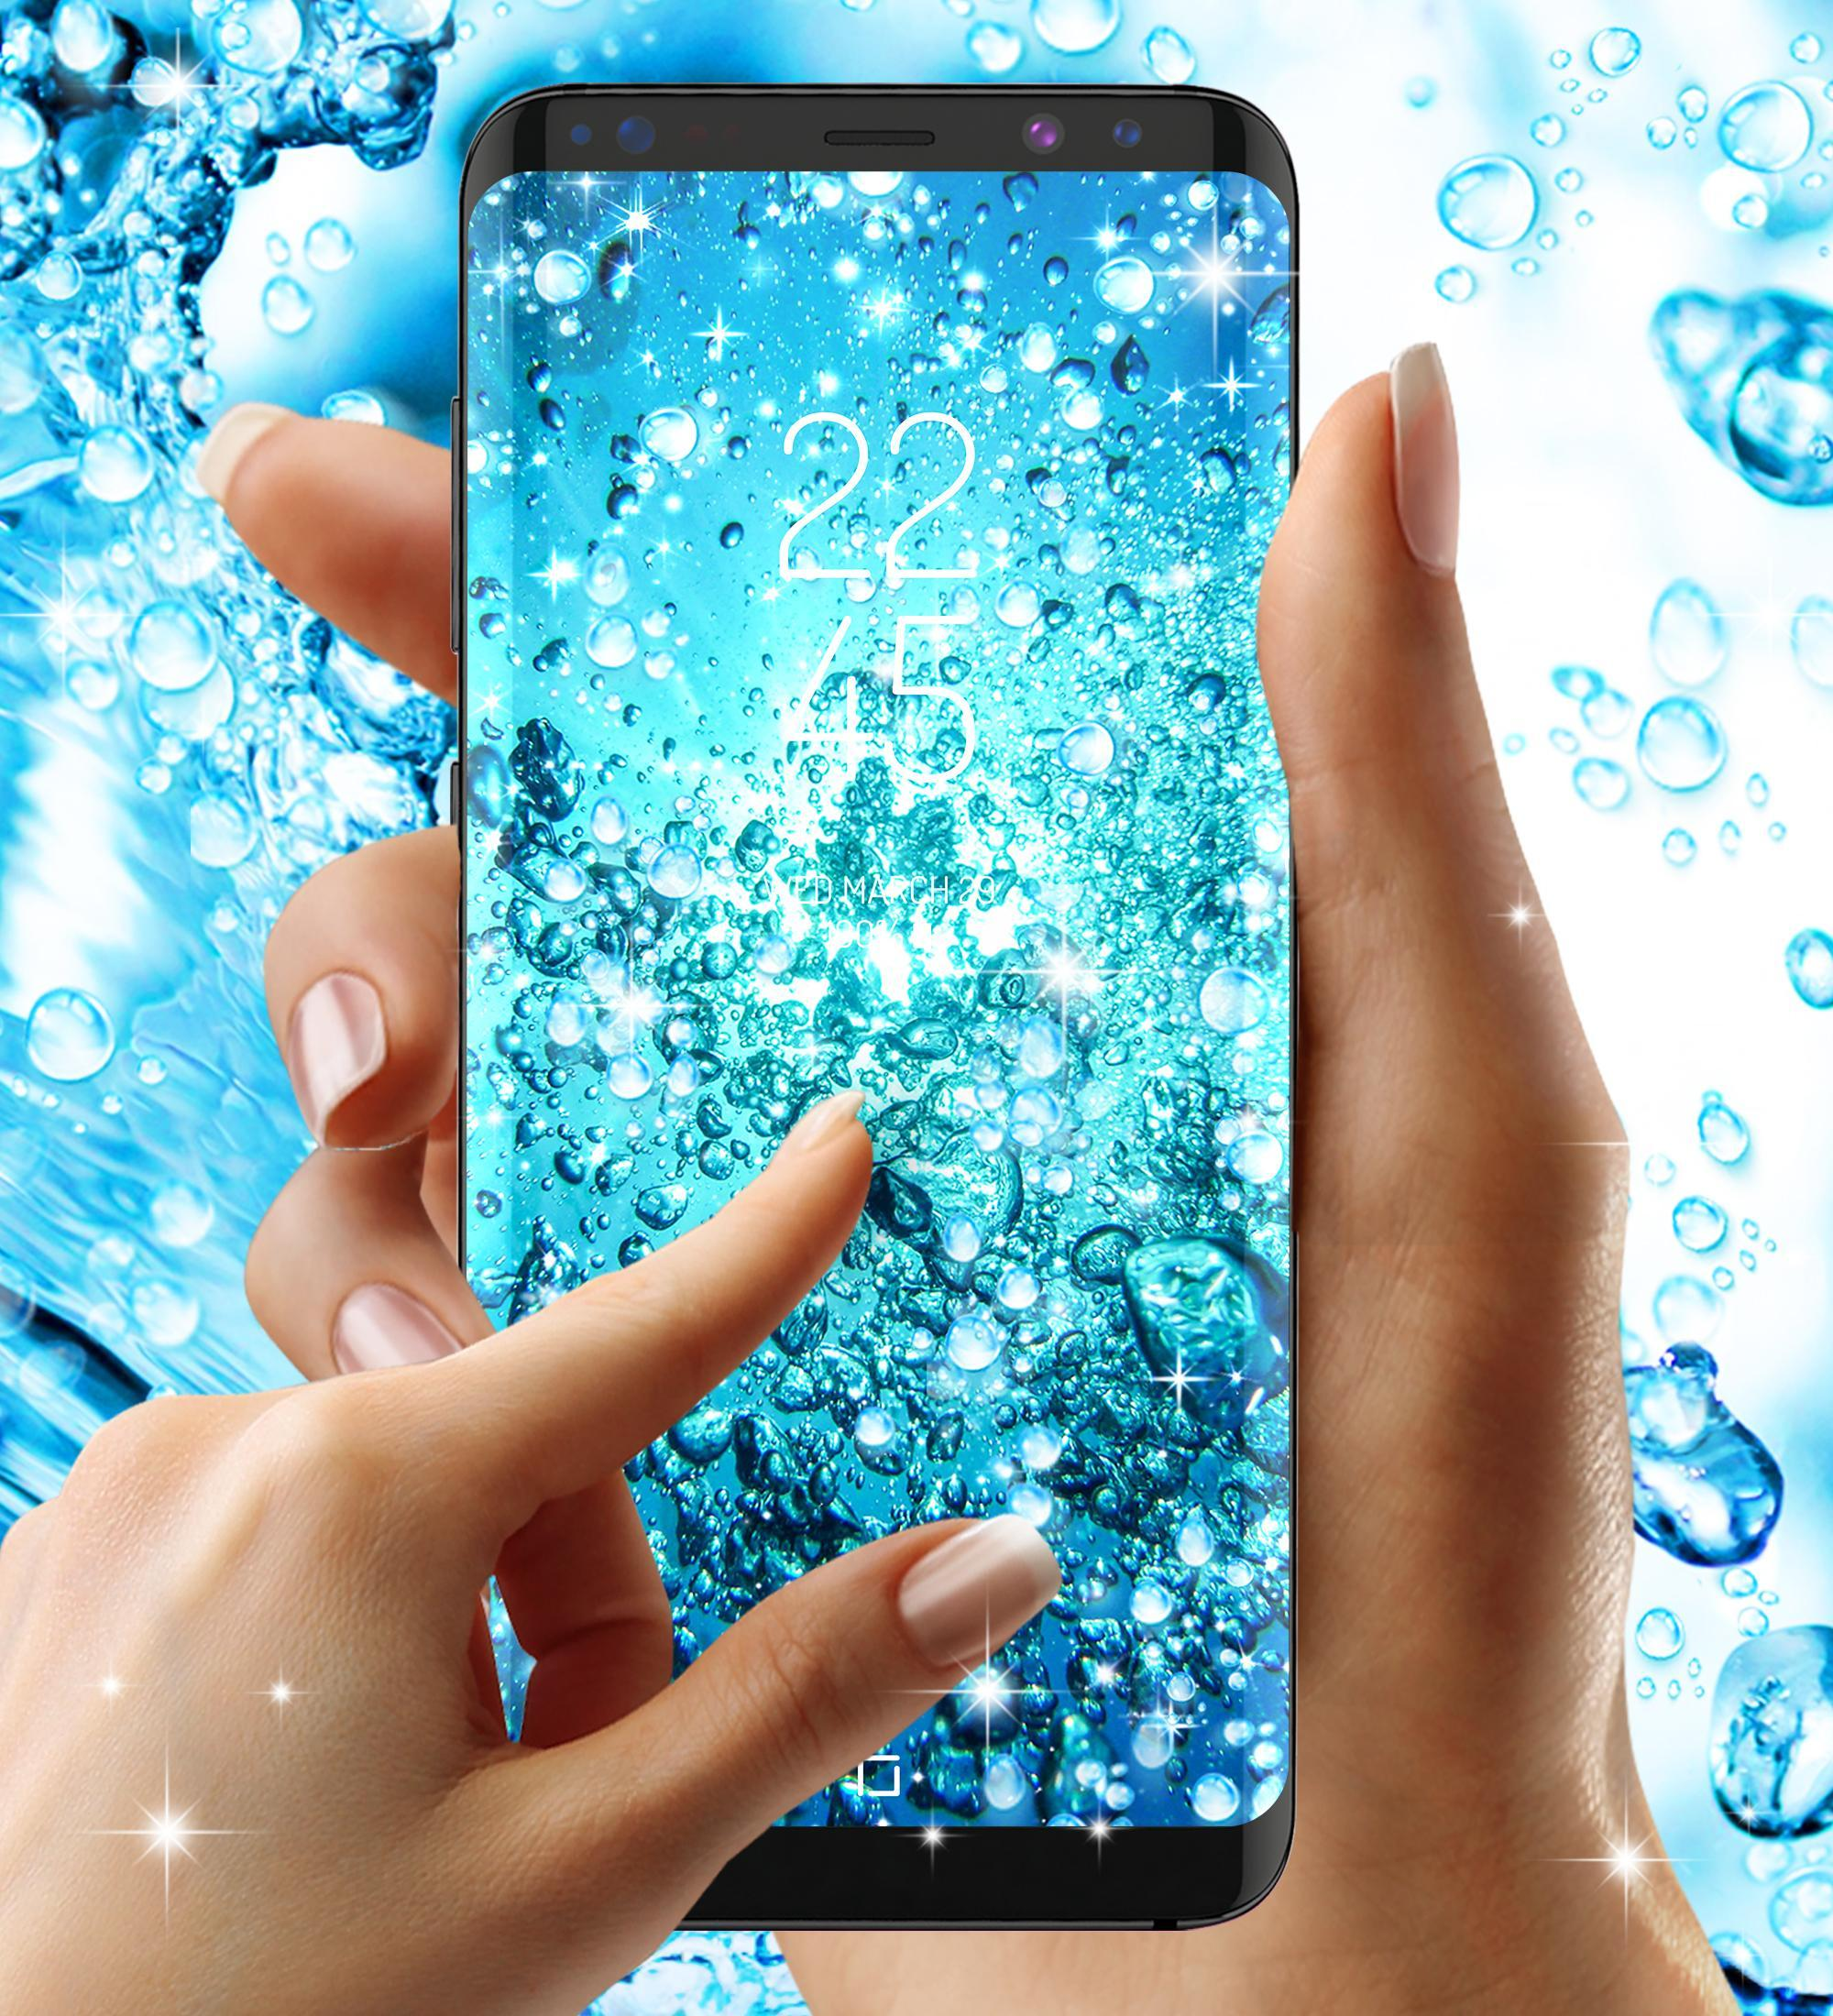 Water Drops Live Wallpaper For Android Apk Download